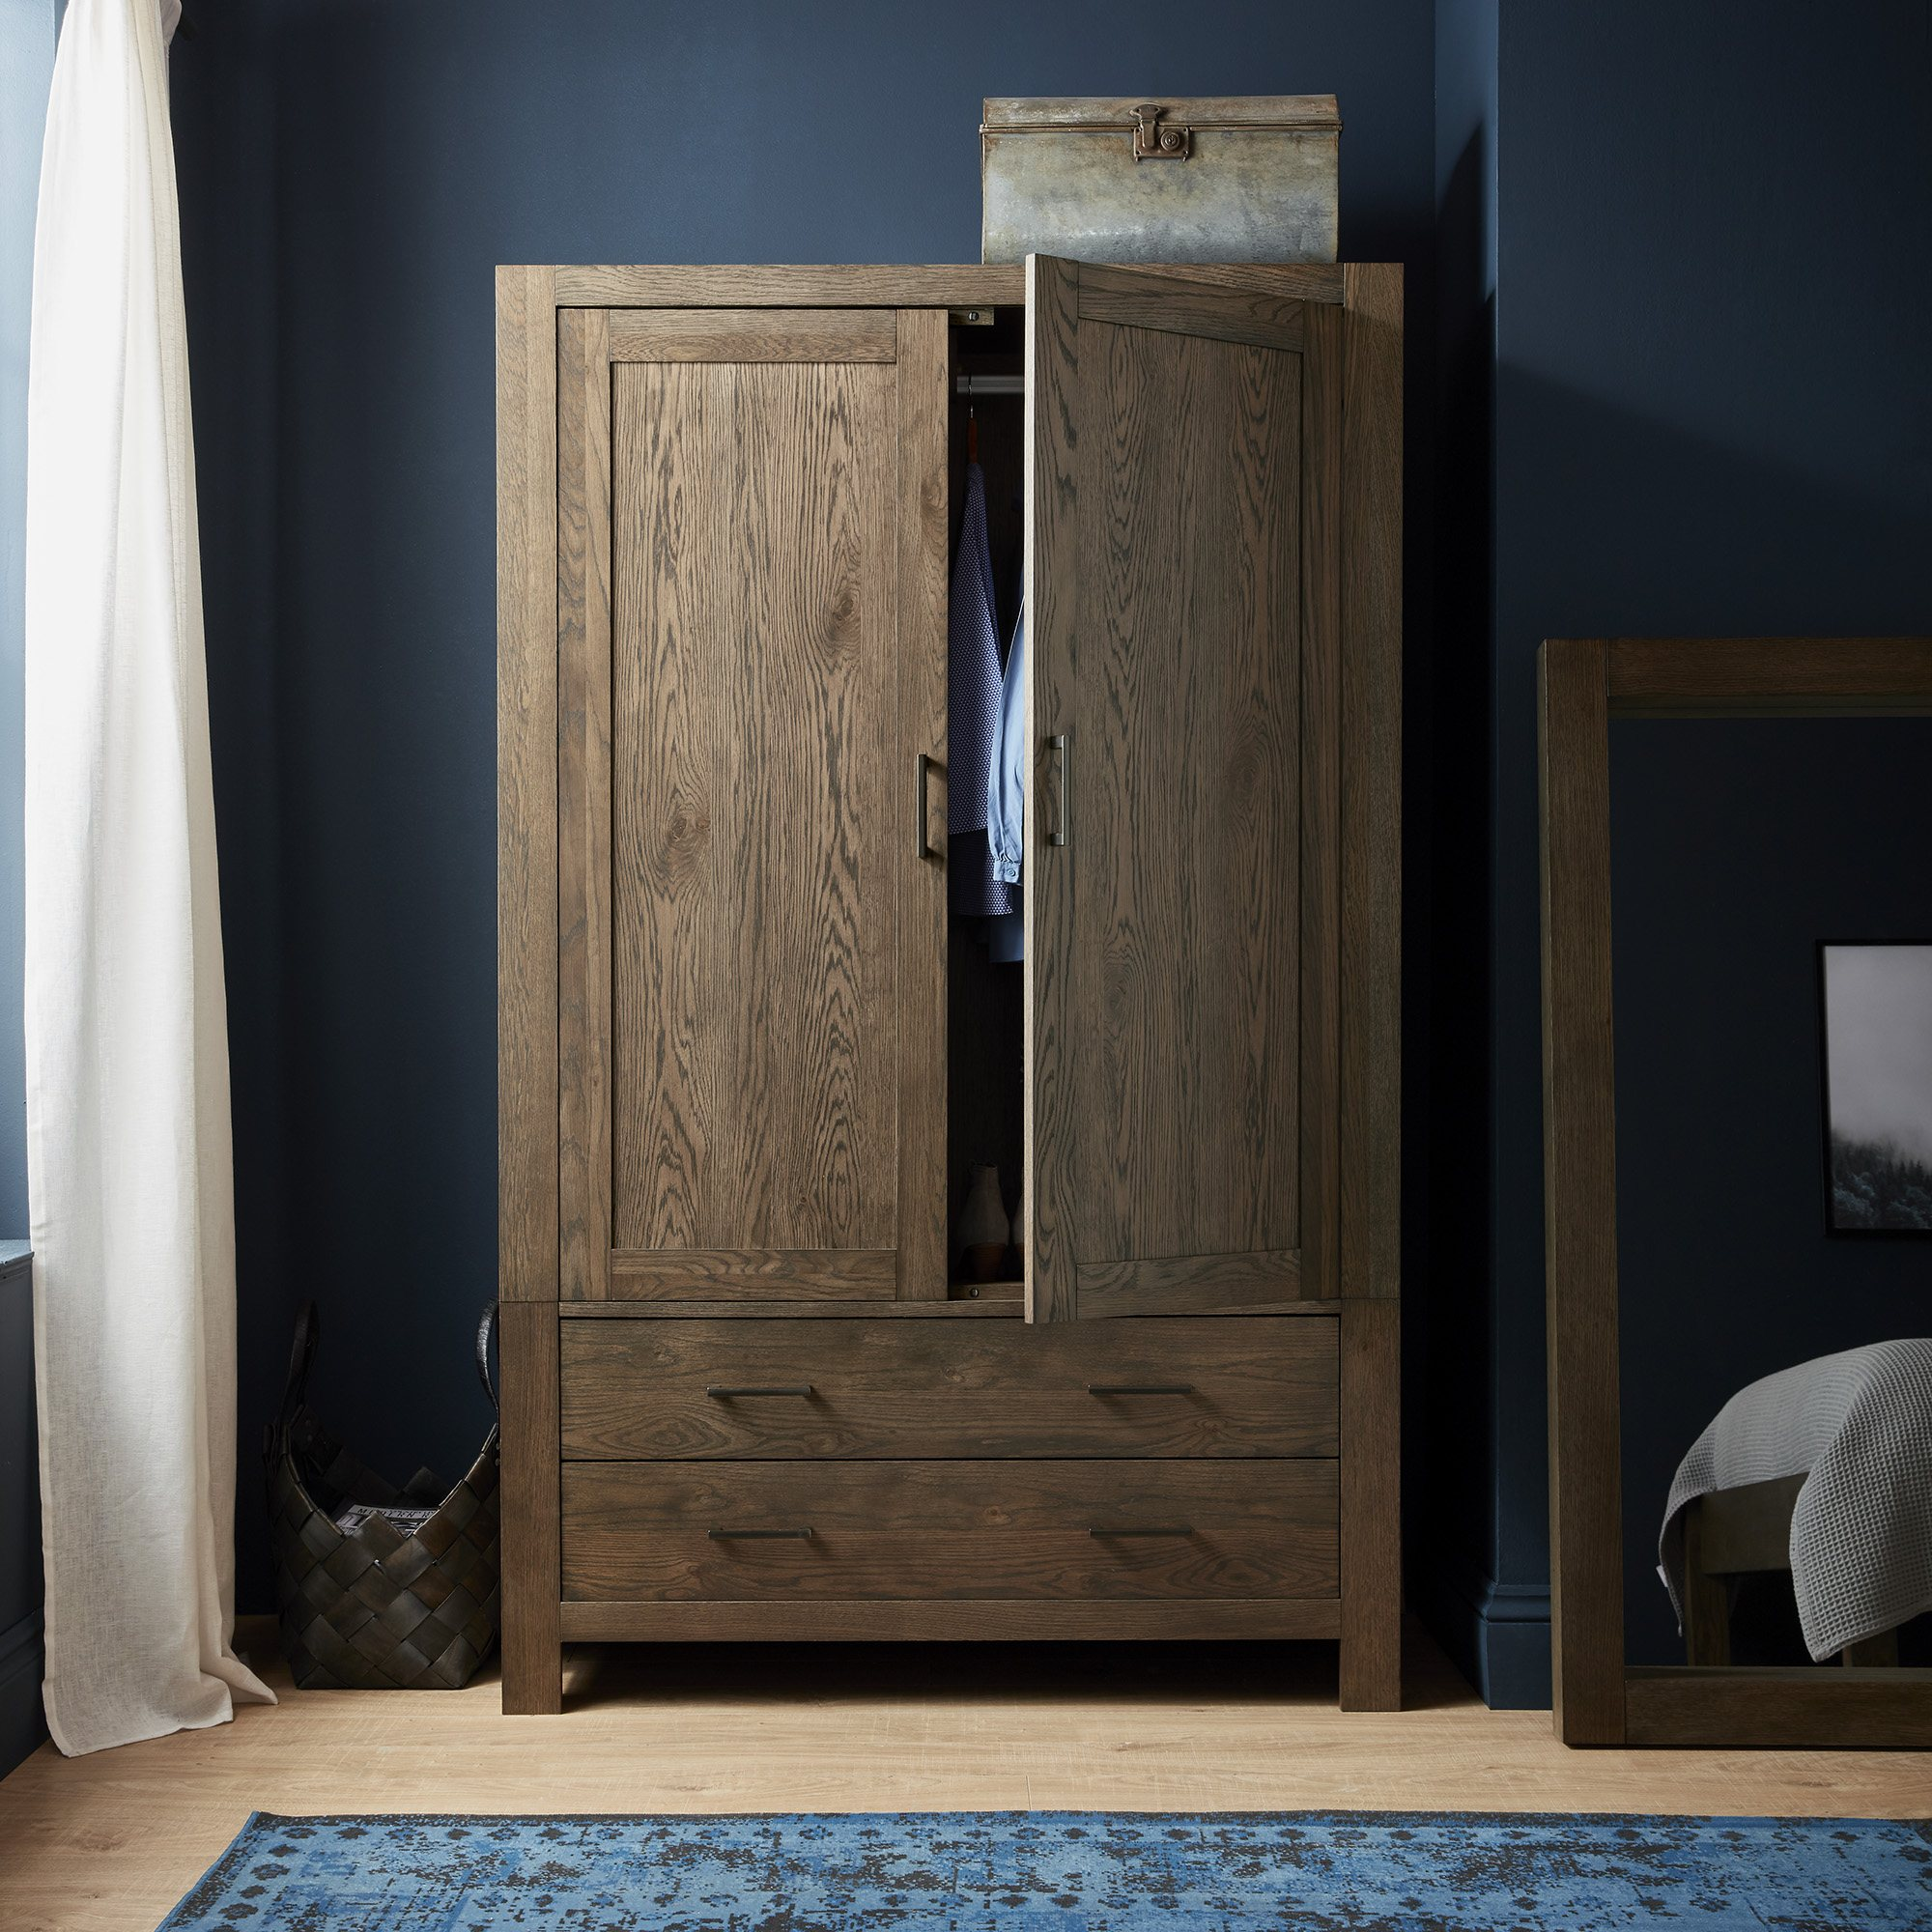 LILLE DARK OAK LARGE DOUBLE ROBE WITH DRAWERS - L122cm x D56cm H195cm